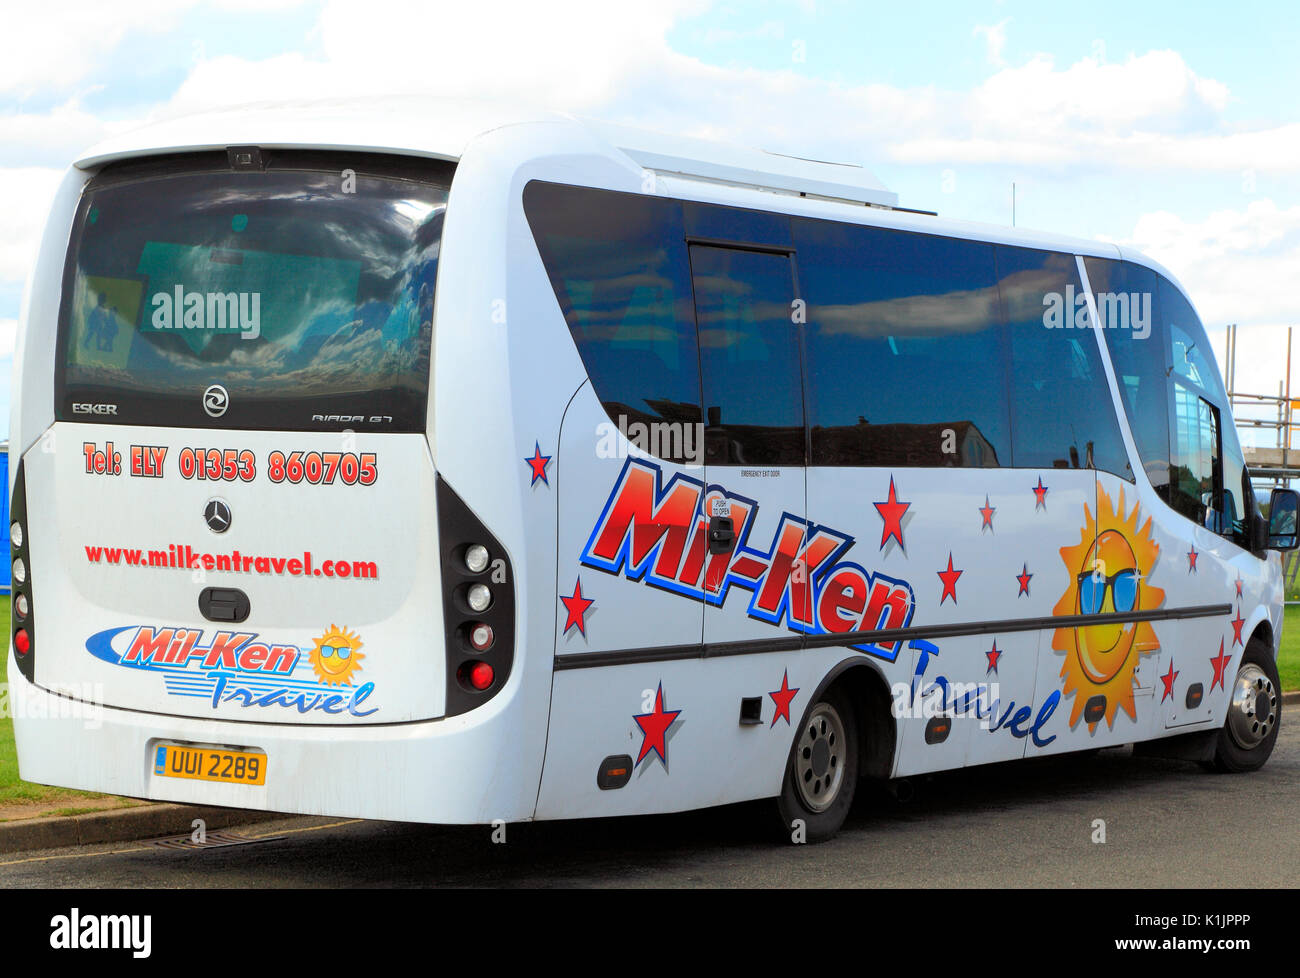 Mil-Ken Travel, mini coach, coaches, day trip, trips, excursion, excursions, travel company, companies, England, UK - Stock Image